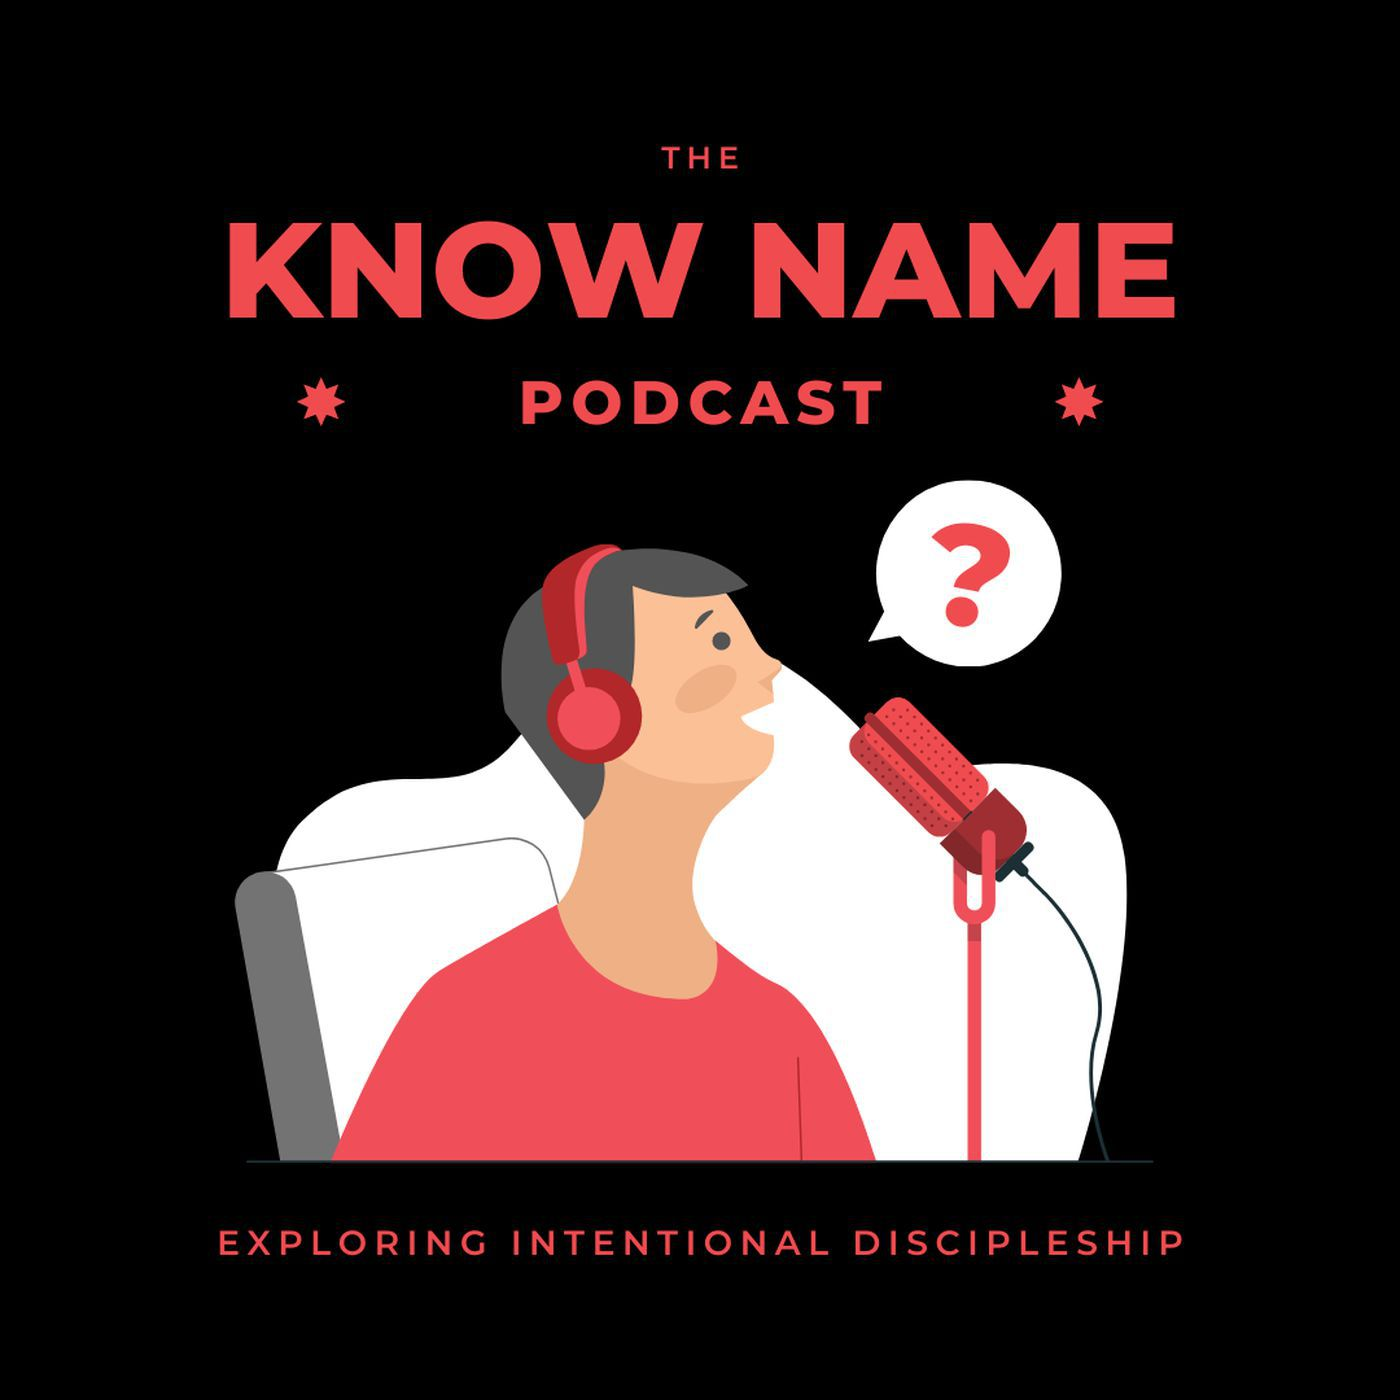 The Know Name Podcast